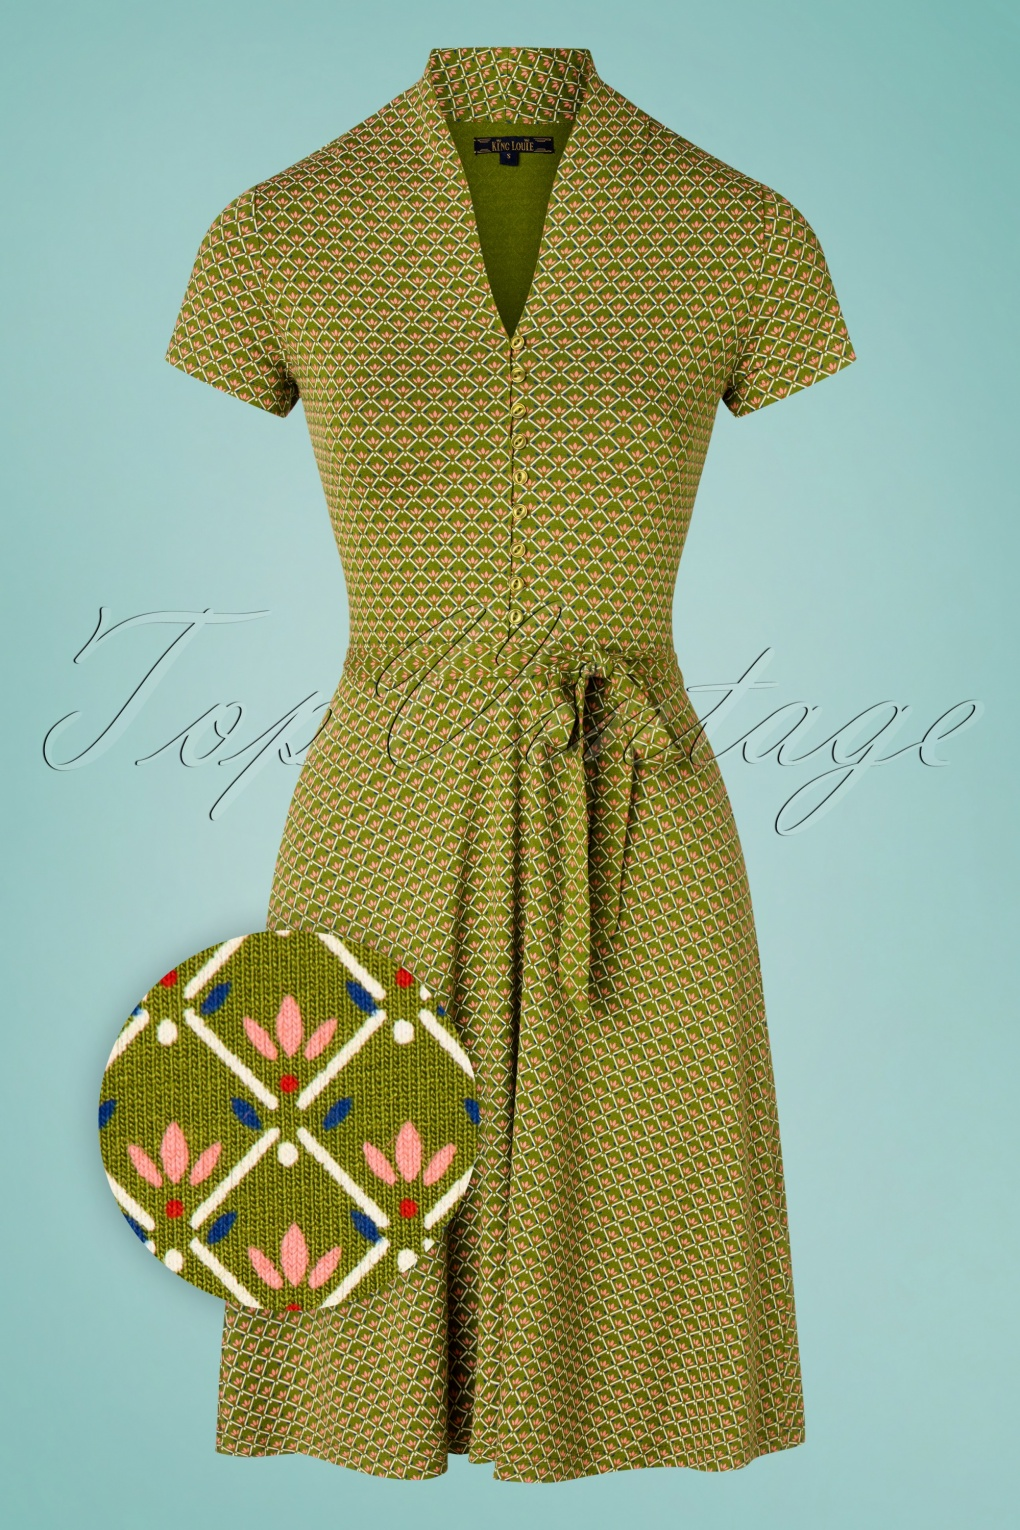 60s Dresses | 1960s Dresses Mod, Mini, Hippie 60s Emmy Fresno Dress in Posey Green £19.95 AT vintagedancer.com